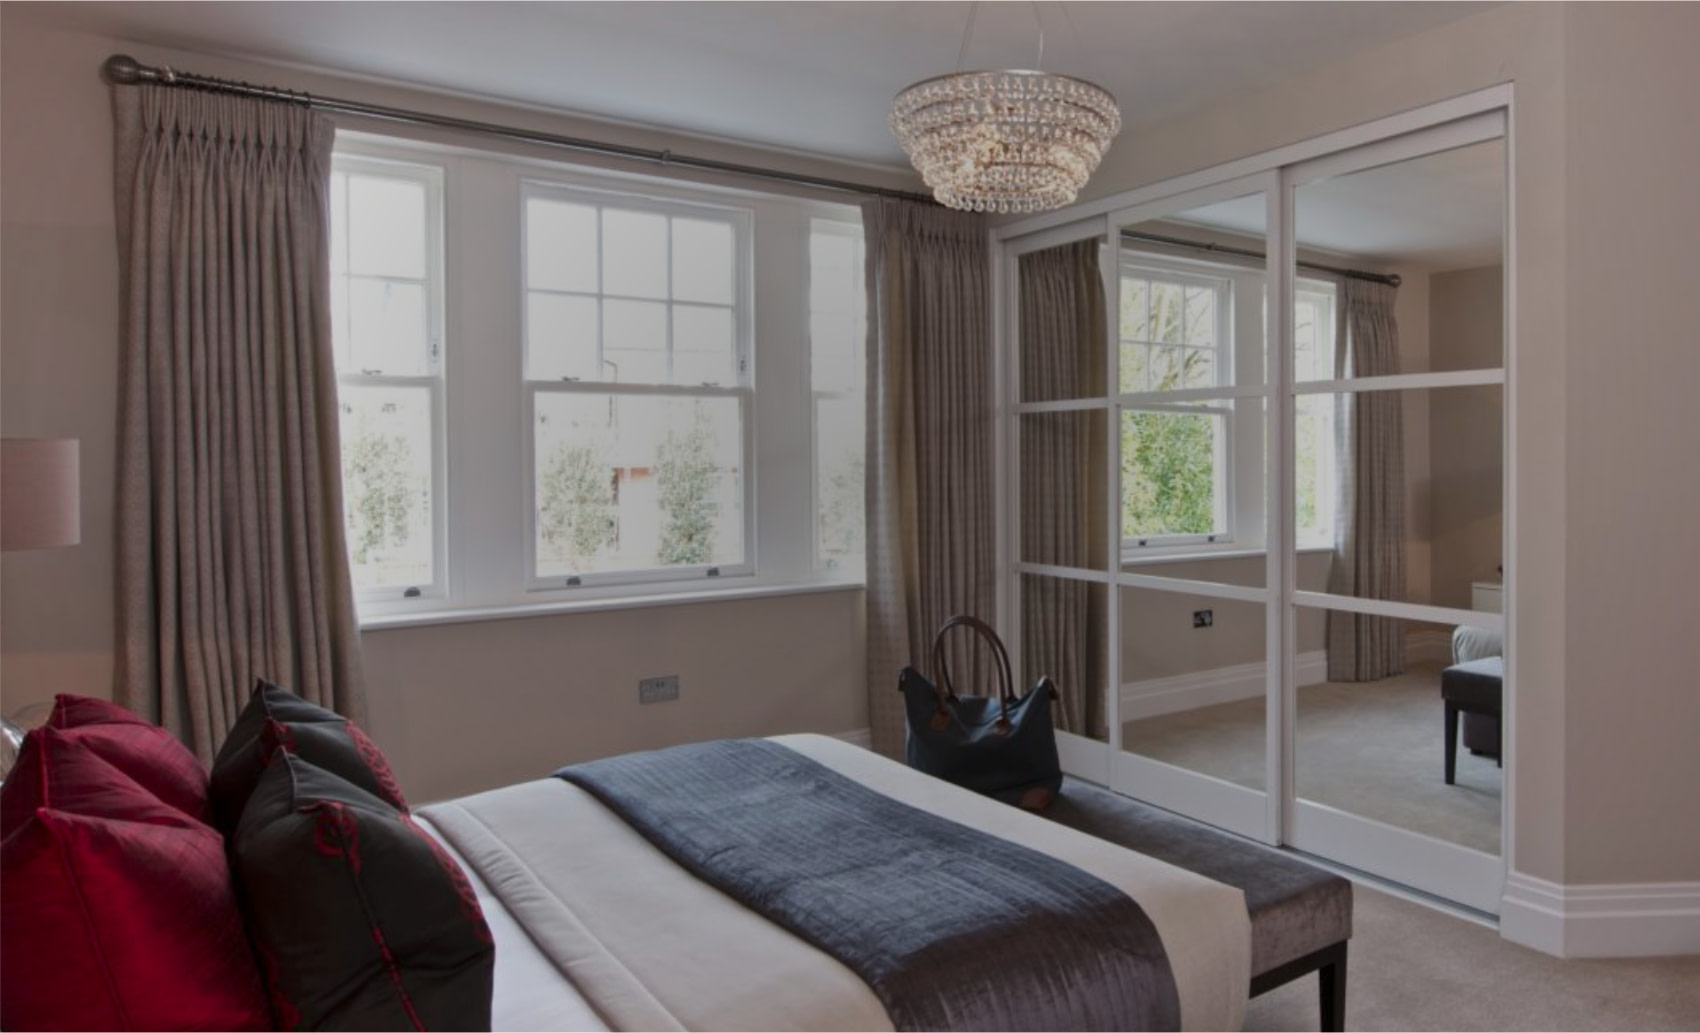 Benefits of built in wardrobes for the bedroom